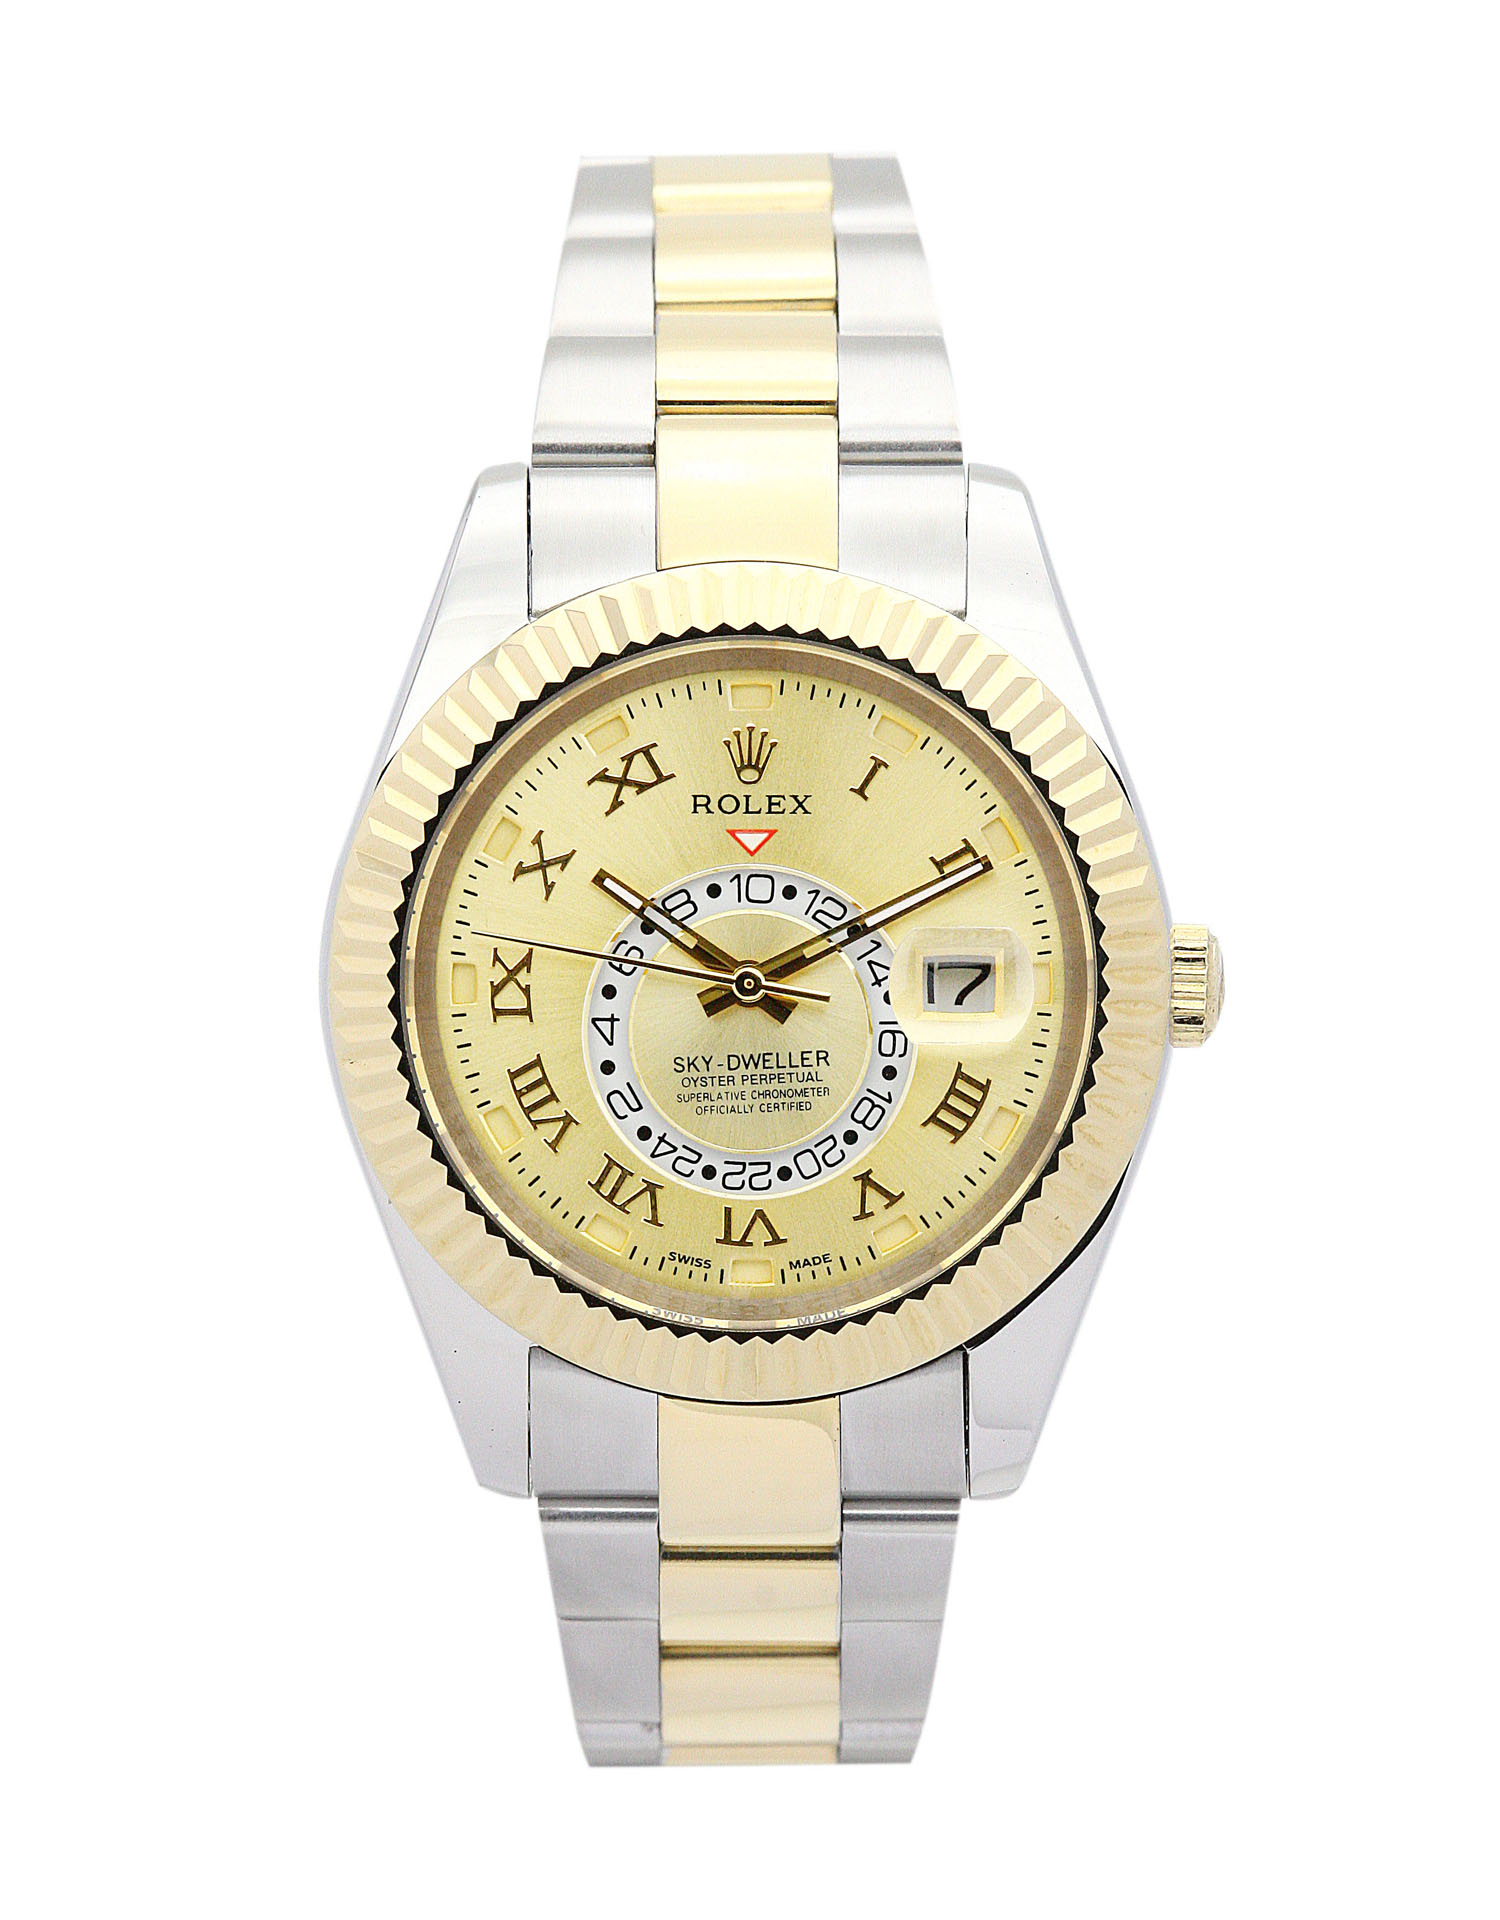 Rolex Sky-dweller 326938 Mens 42 Mm Yellow Gold Case Automatic Movement – iapac.to